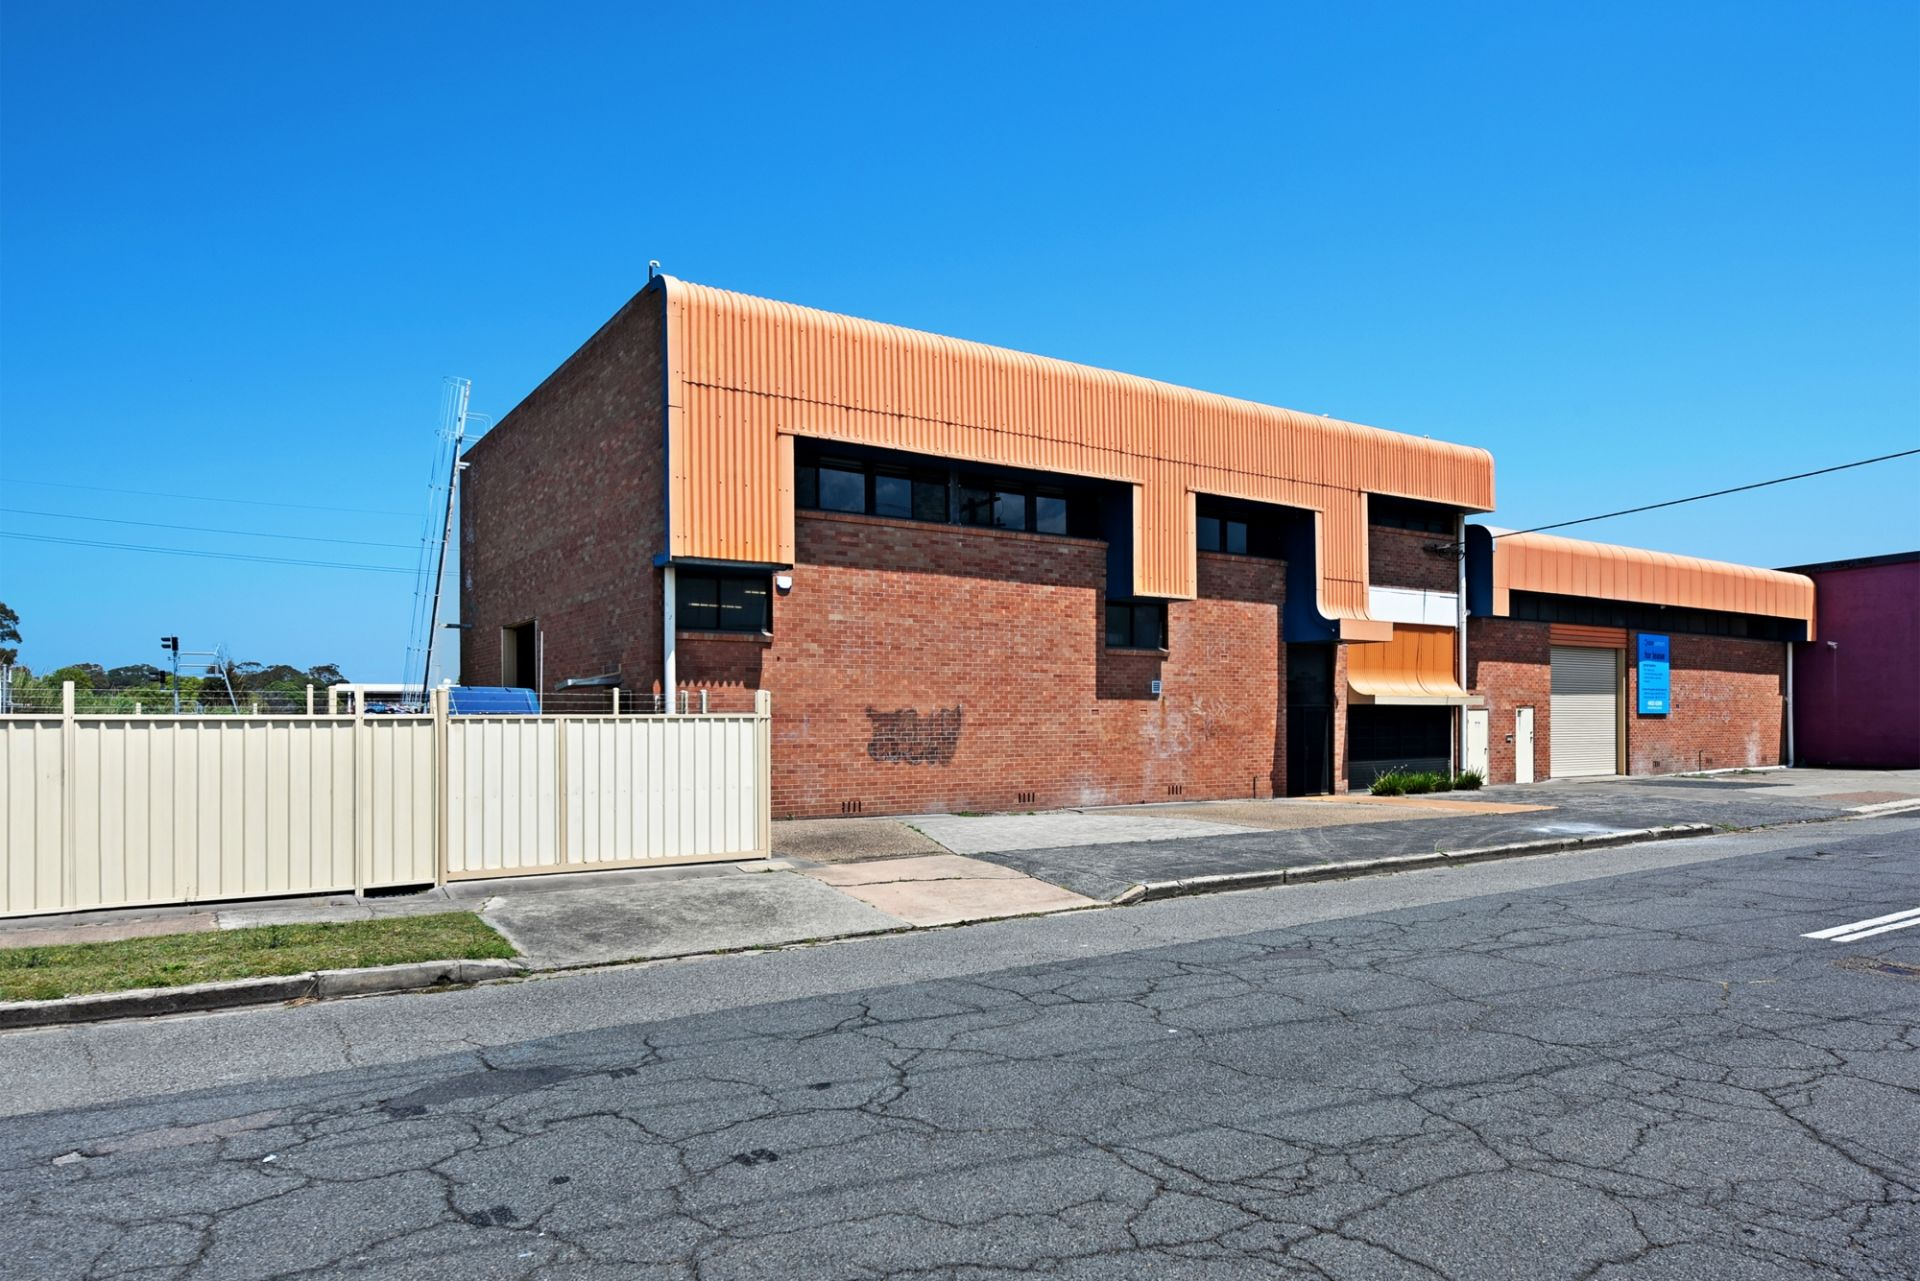 Warehouse Located within the City Limits